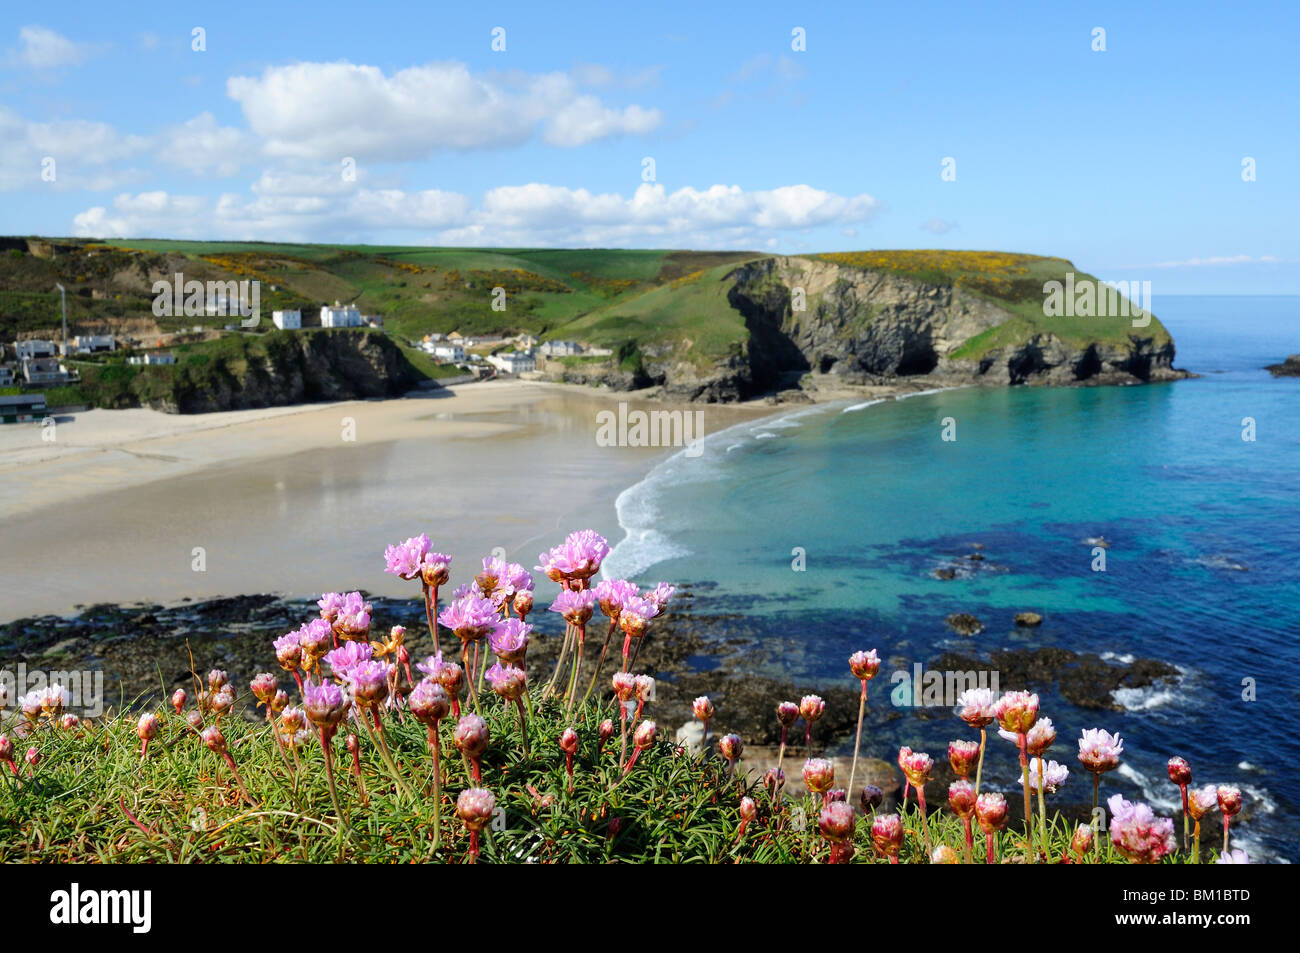 thrift in flower above the beach at portreath in cornwall, uk - Stock Image